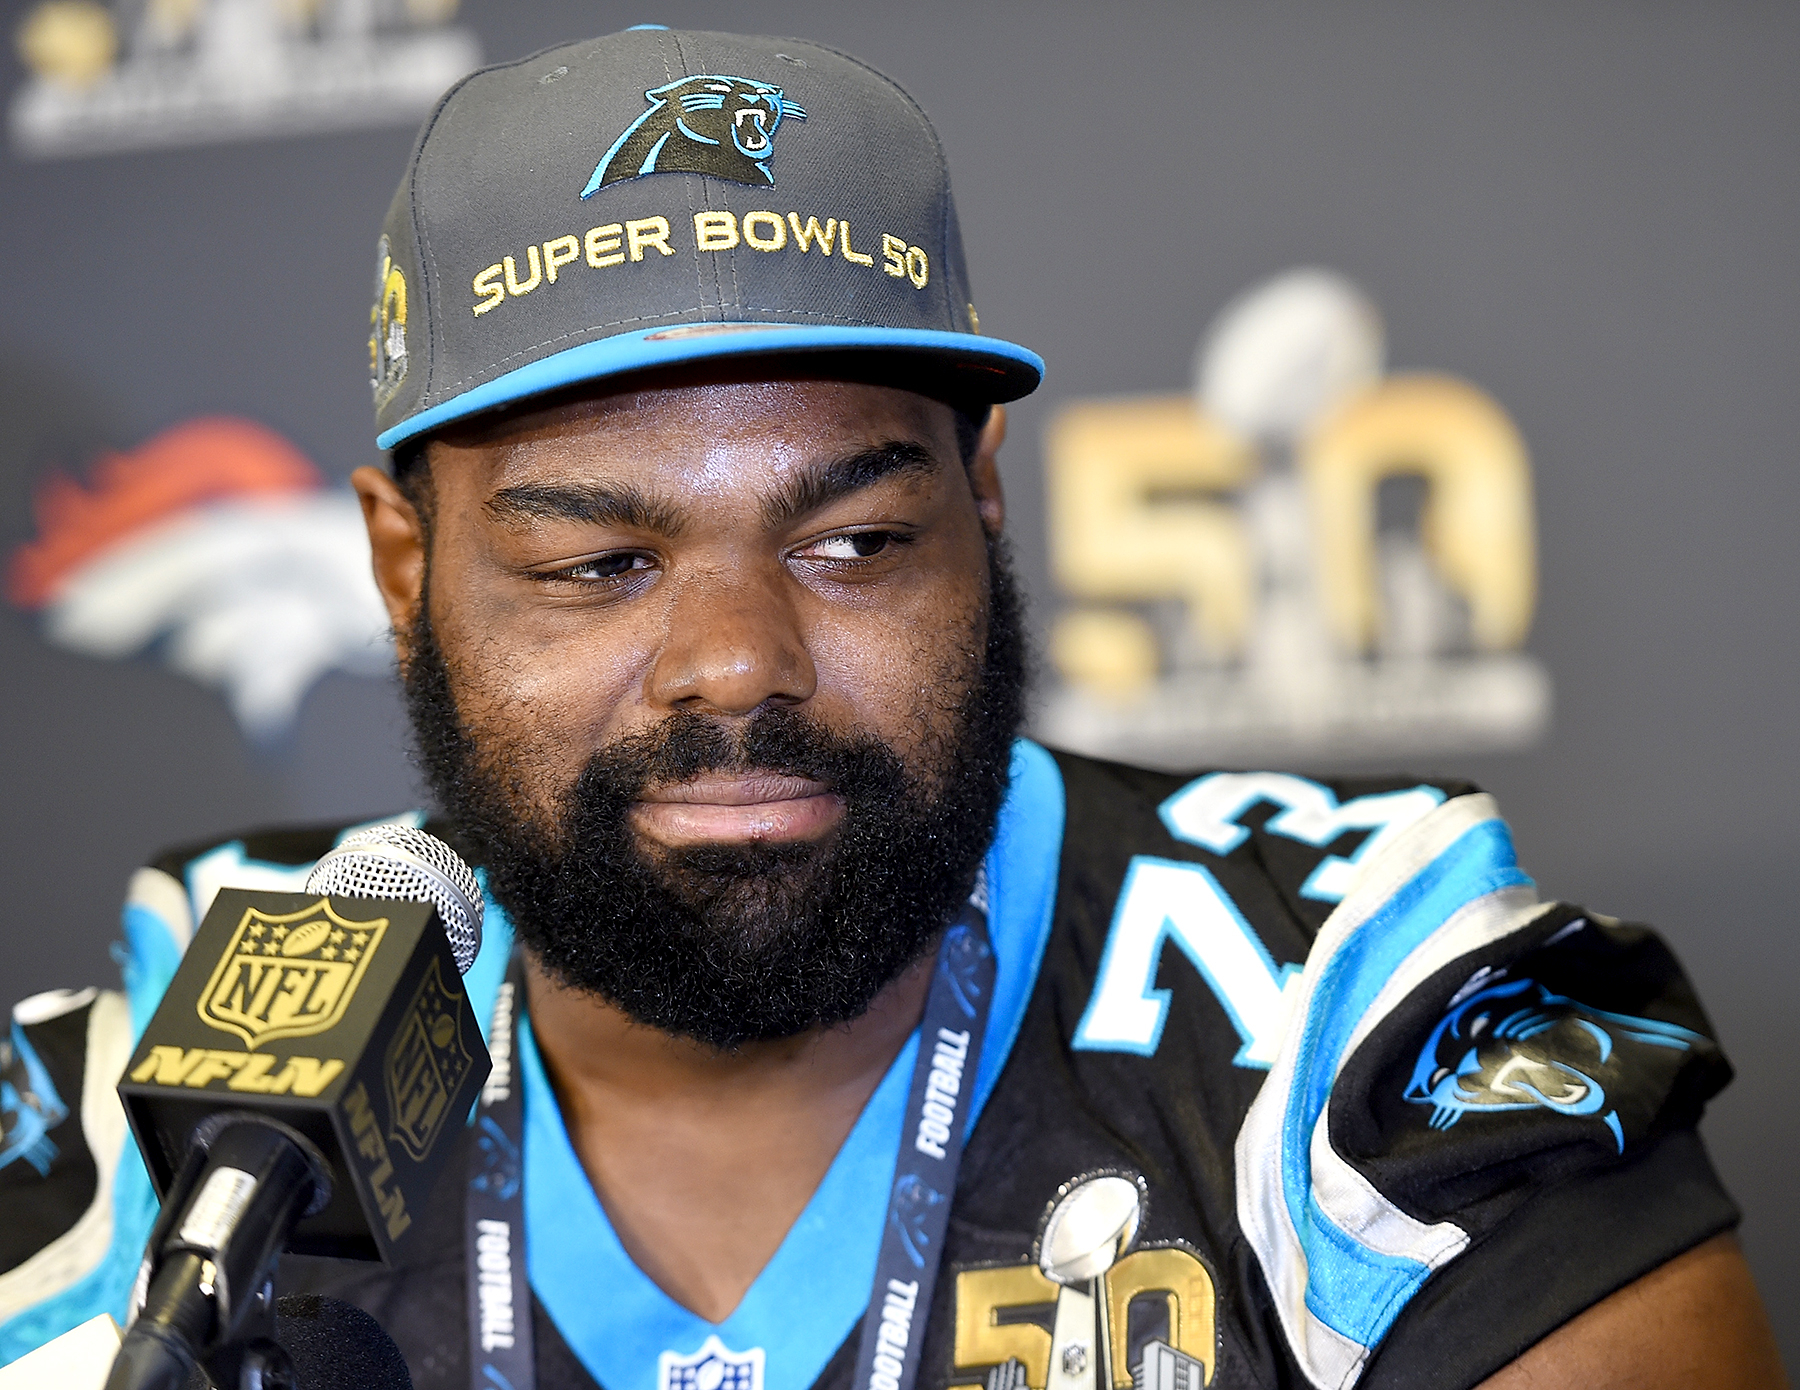 Michael Oher #73 of the Carolina Panther addresses the media prior to Super Bowl 50 at the San Jose Convention Center/ San Jose Marriott on February 2, 2016 in San Jose, California.